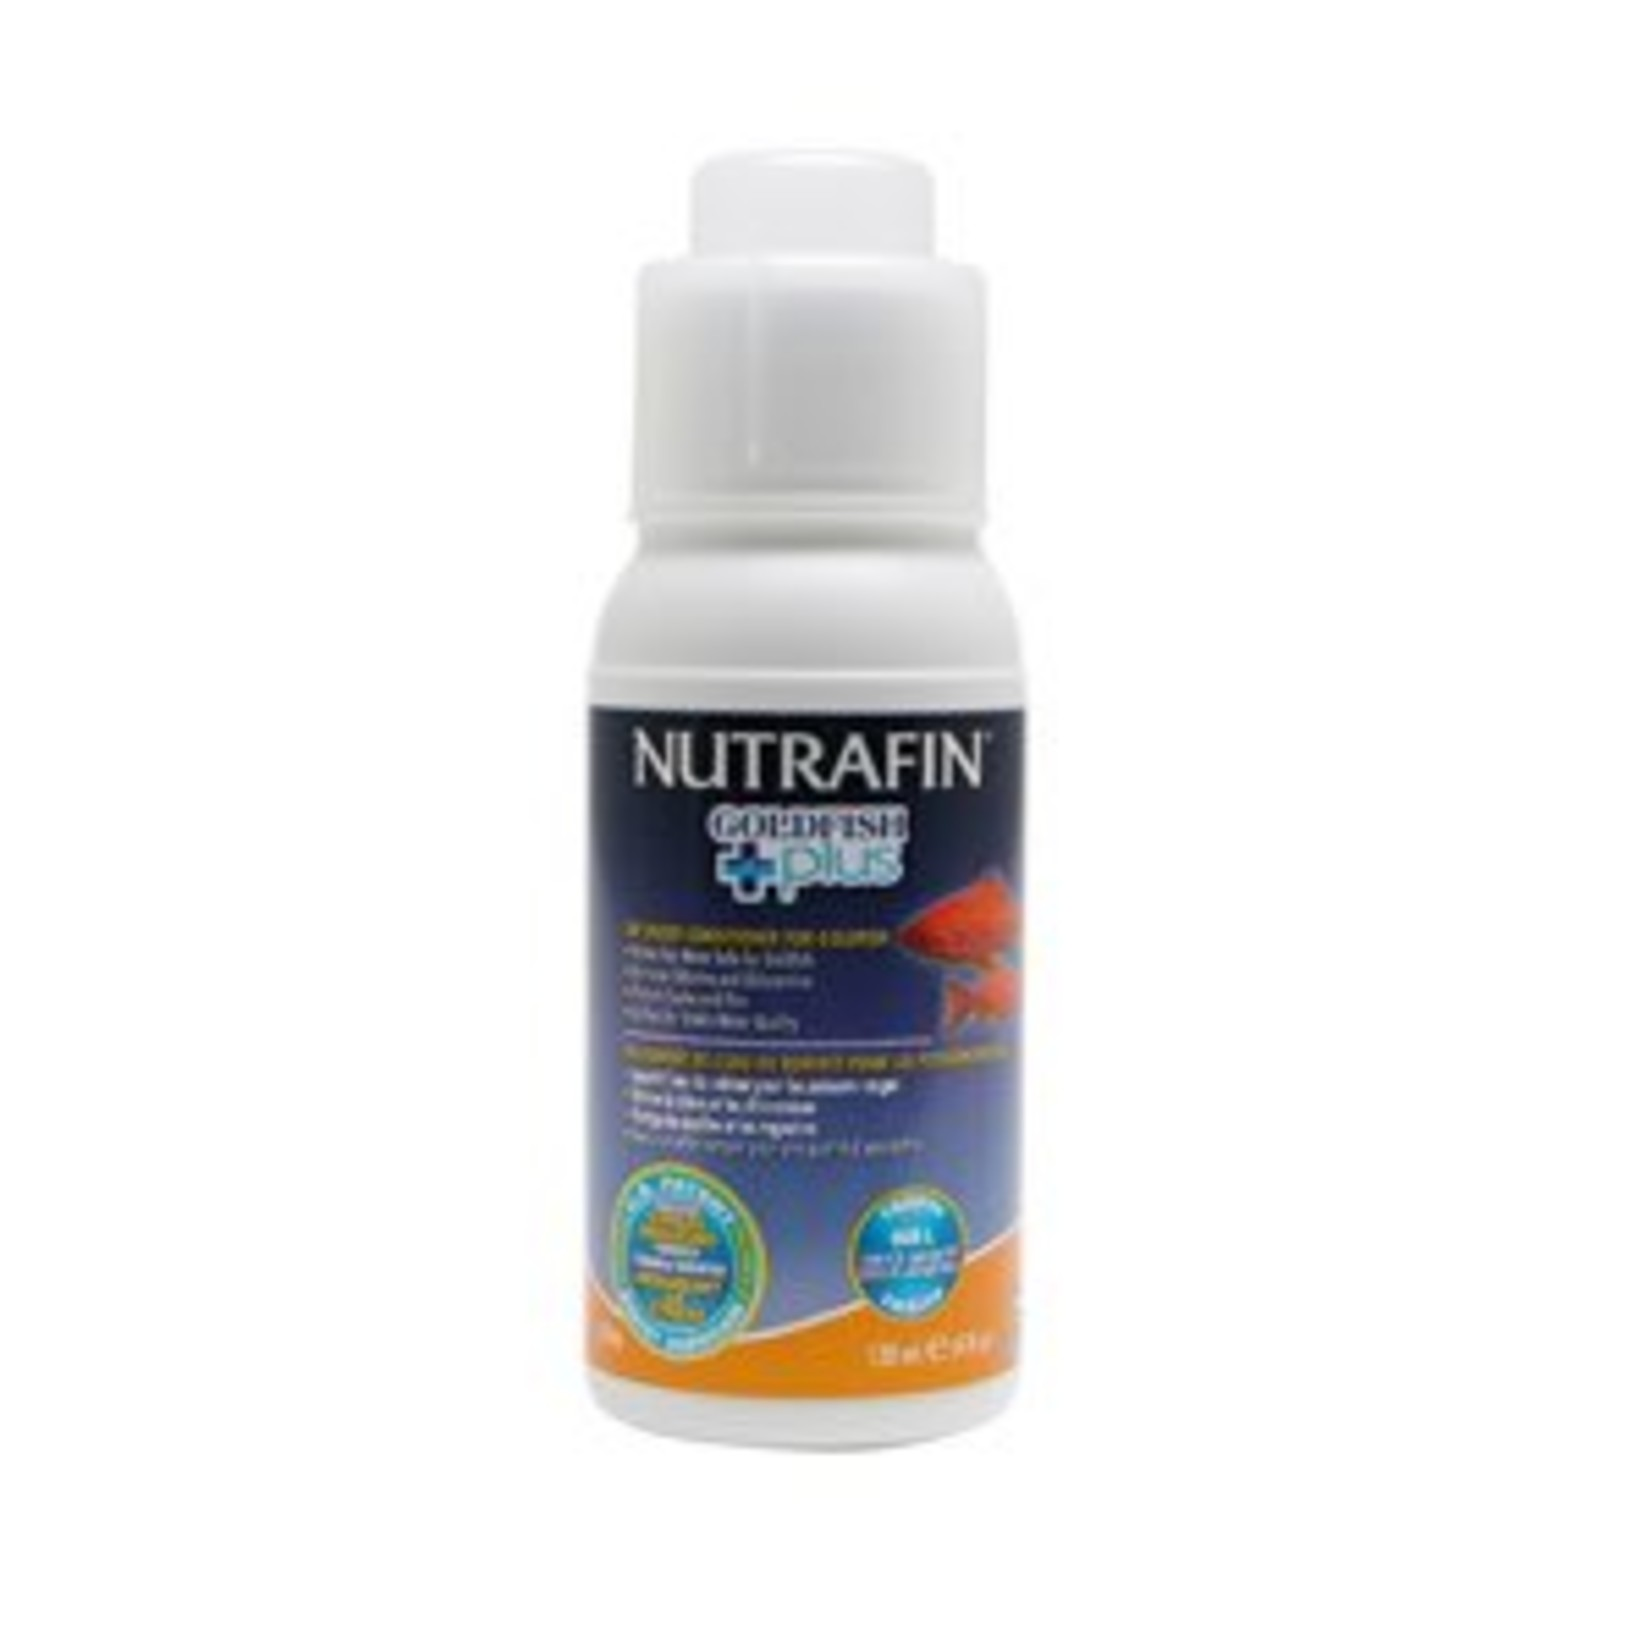 Nutrafin Nutrafin Goldfish Plus, Tap Water Conditioner for Goldfish, 120 mL (4 fl oz)